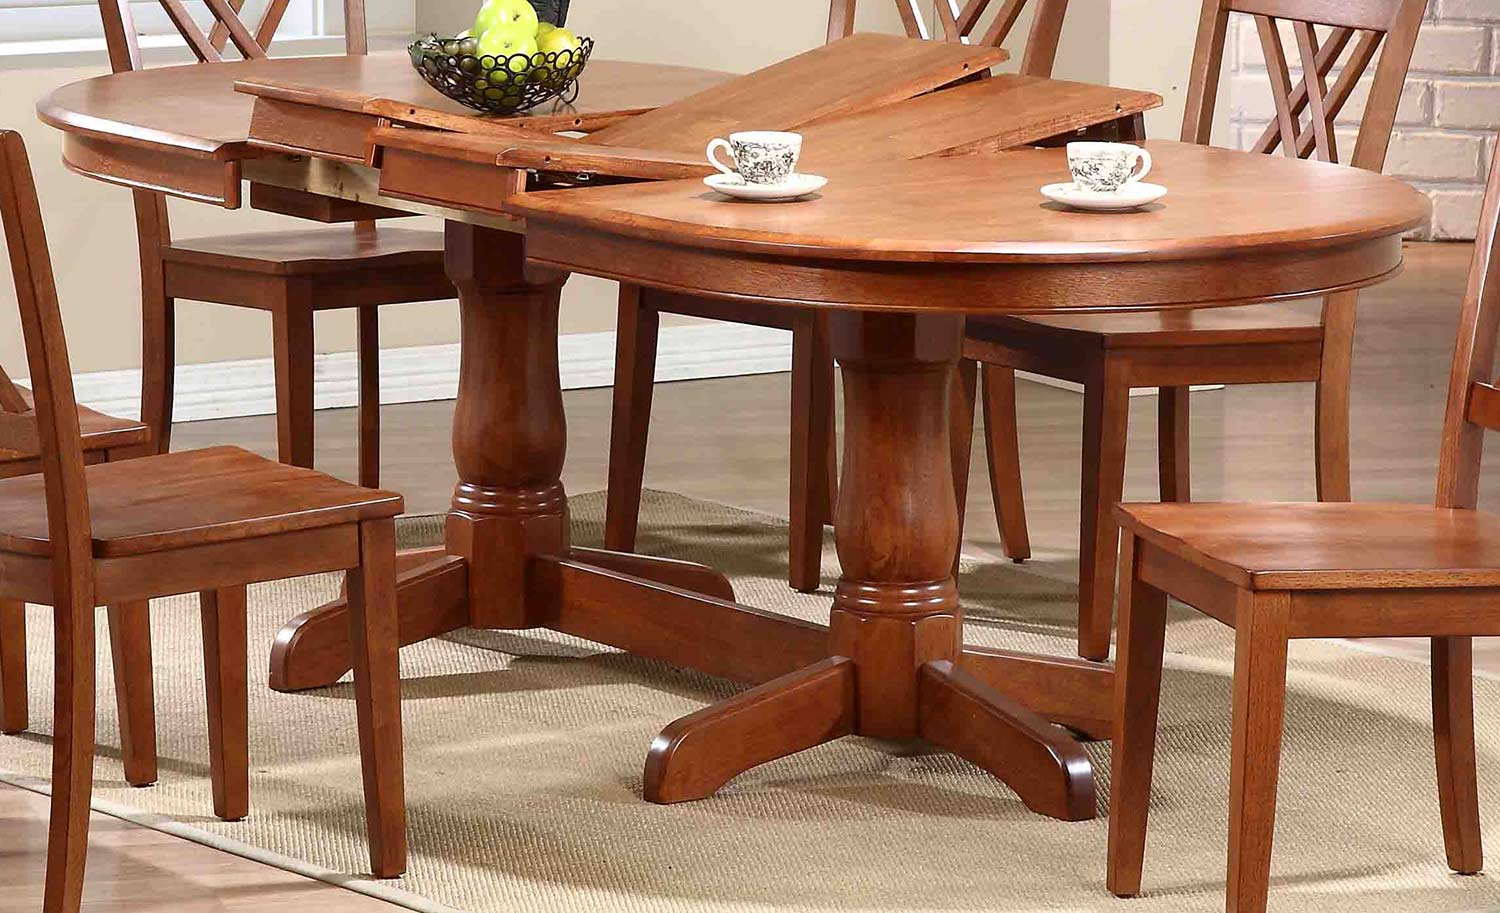 Iconic Furniture Oval Double Pedestal Dining Table   Cinnamon/Cinnamon